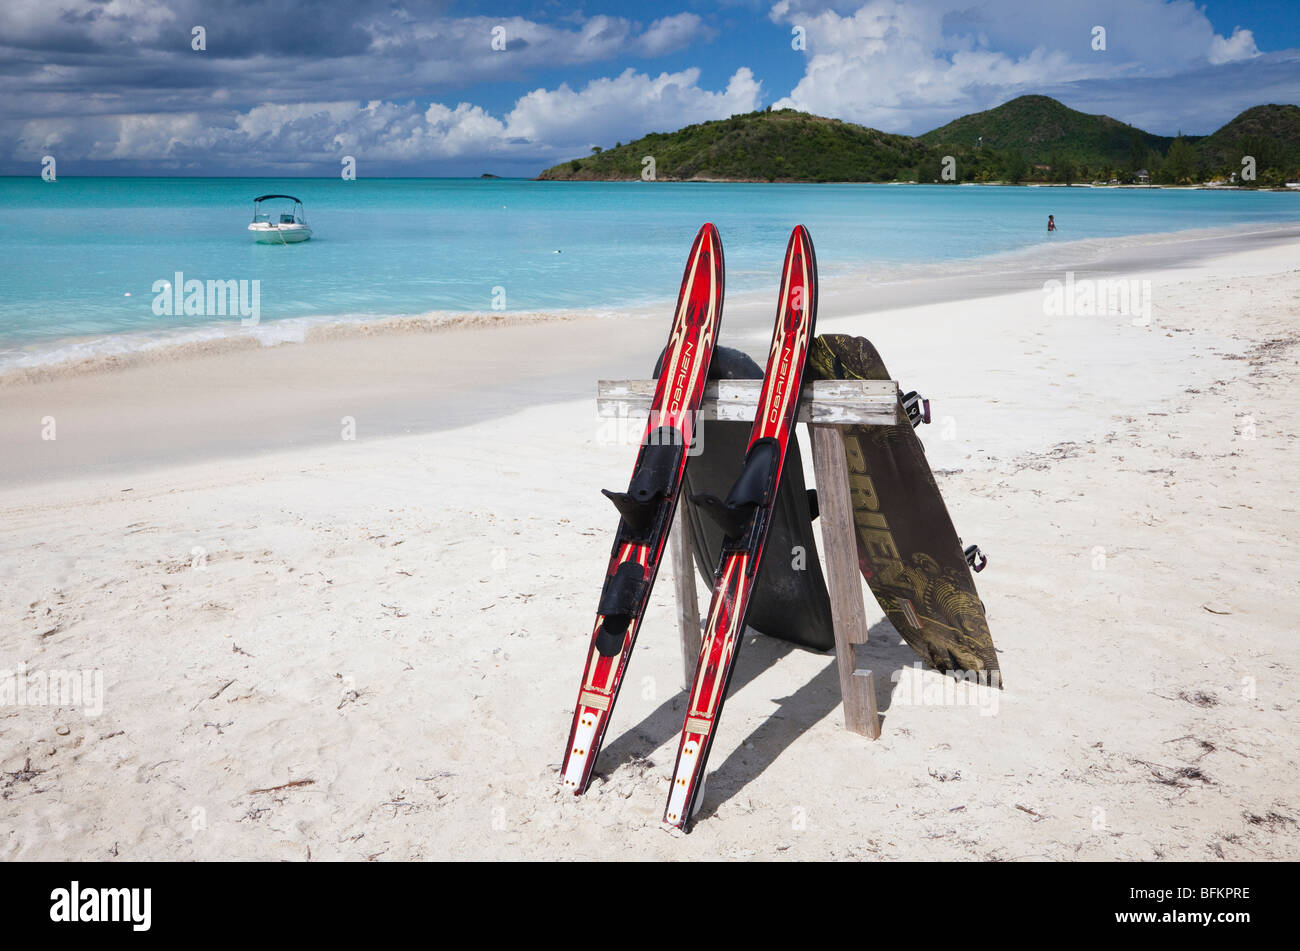 Water skis on the beach at Lignum Vitae Bay, Antigua - Stock Image